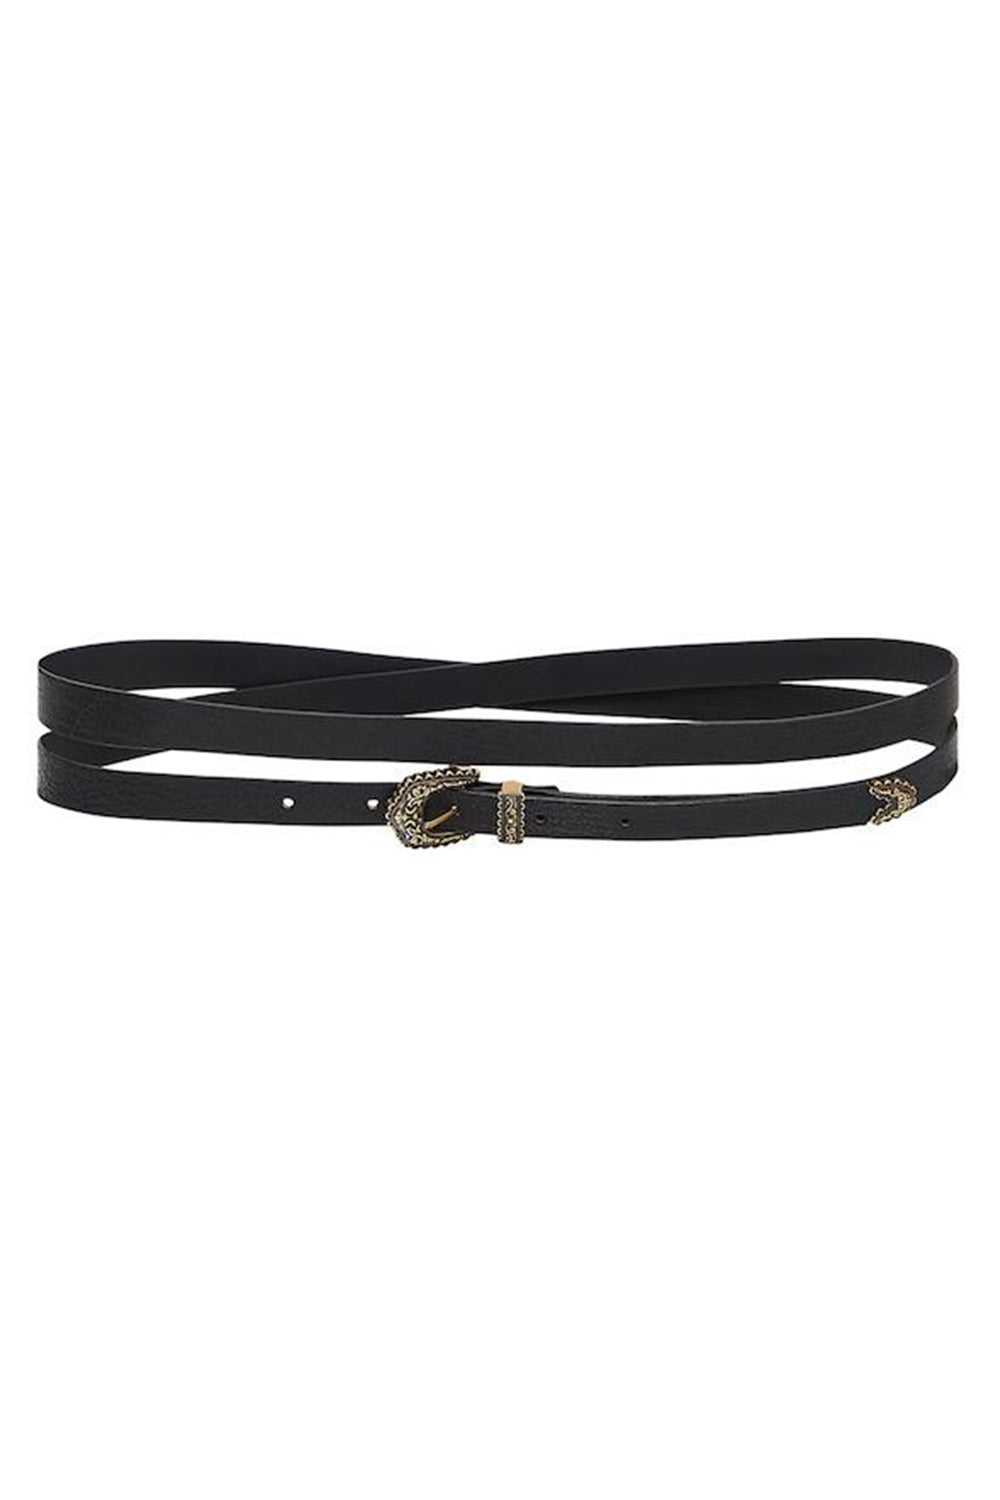 CAMILLA - SKINNY DOUBLE WRAP BELT WAS $279